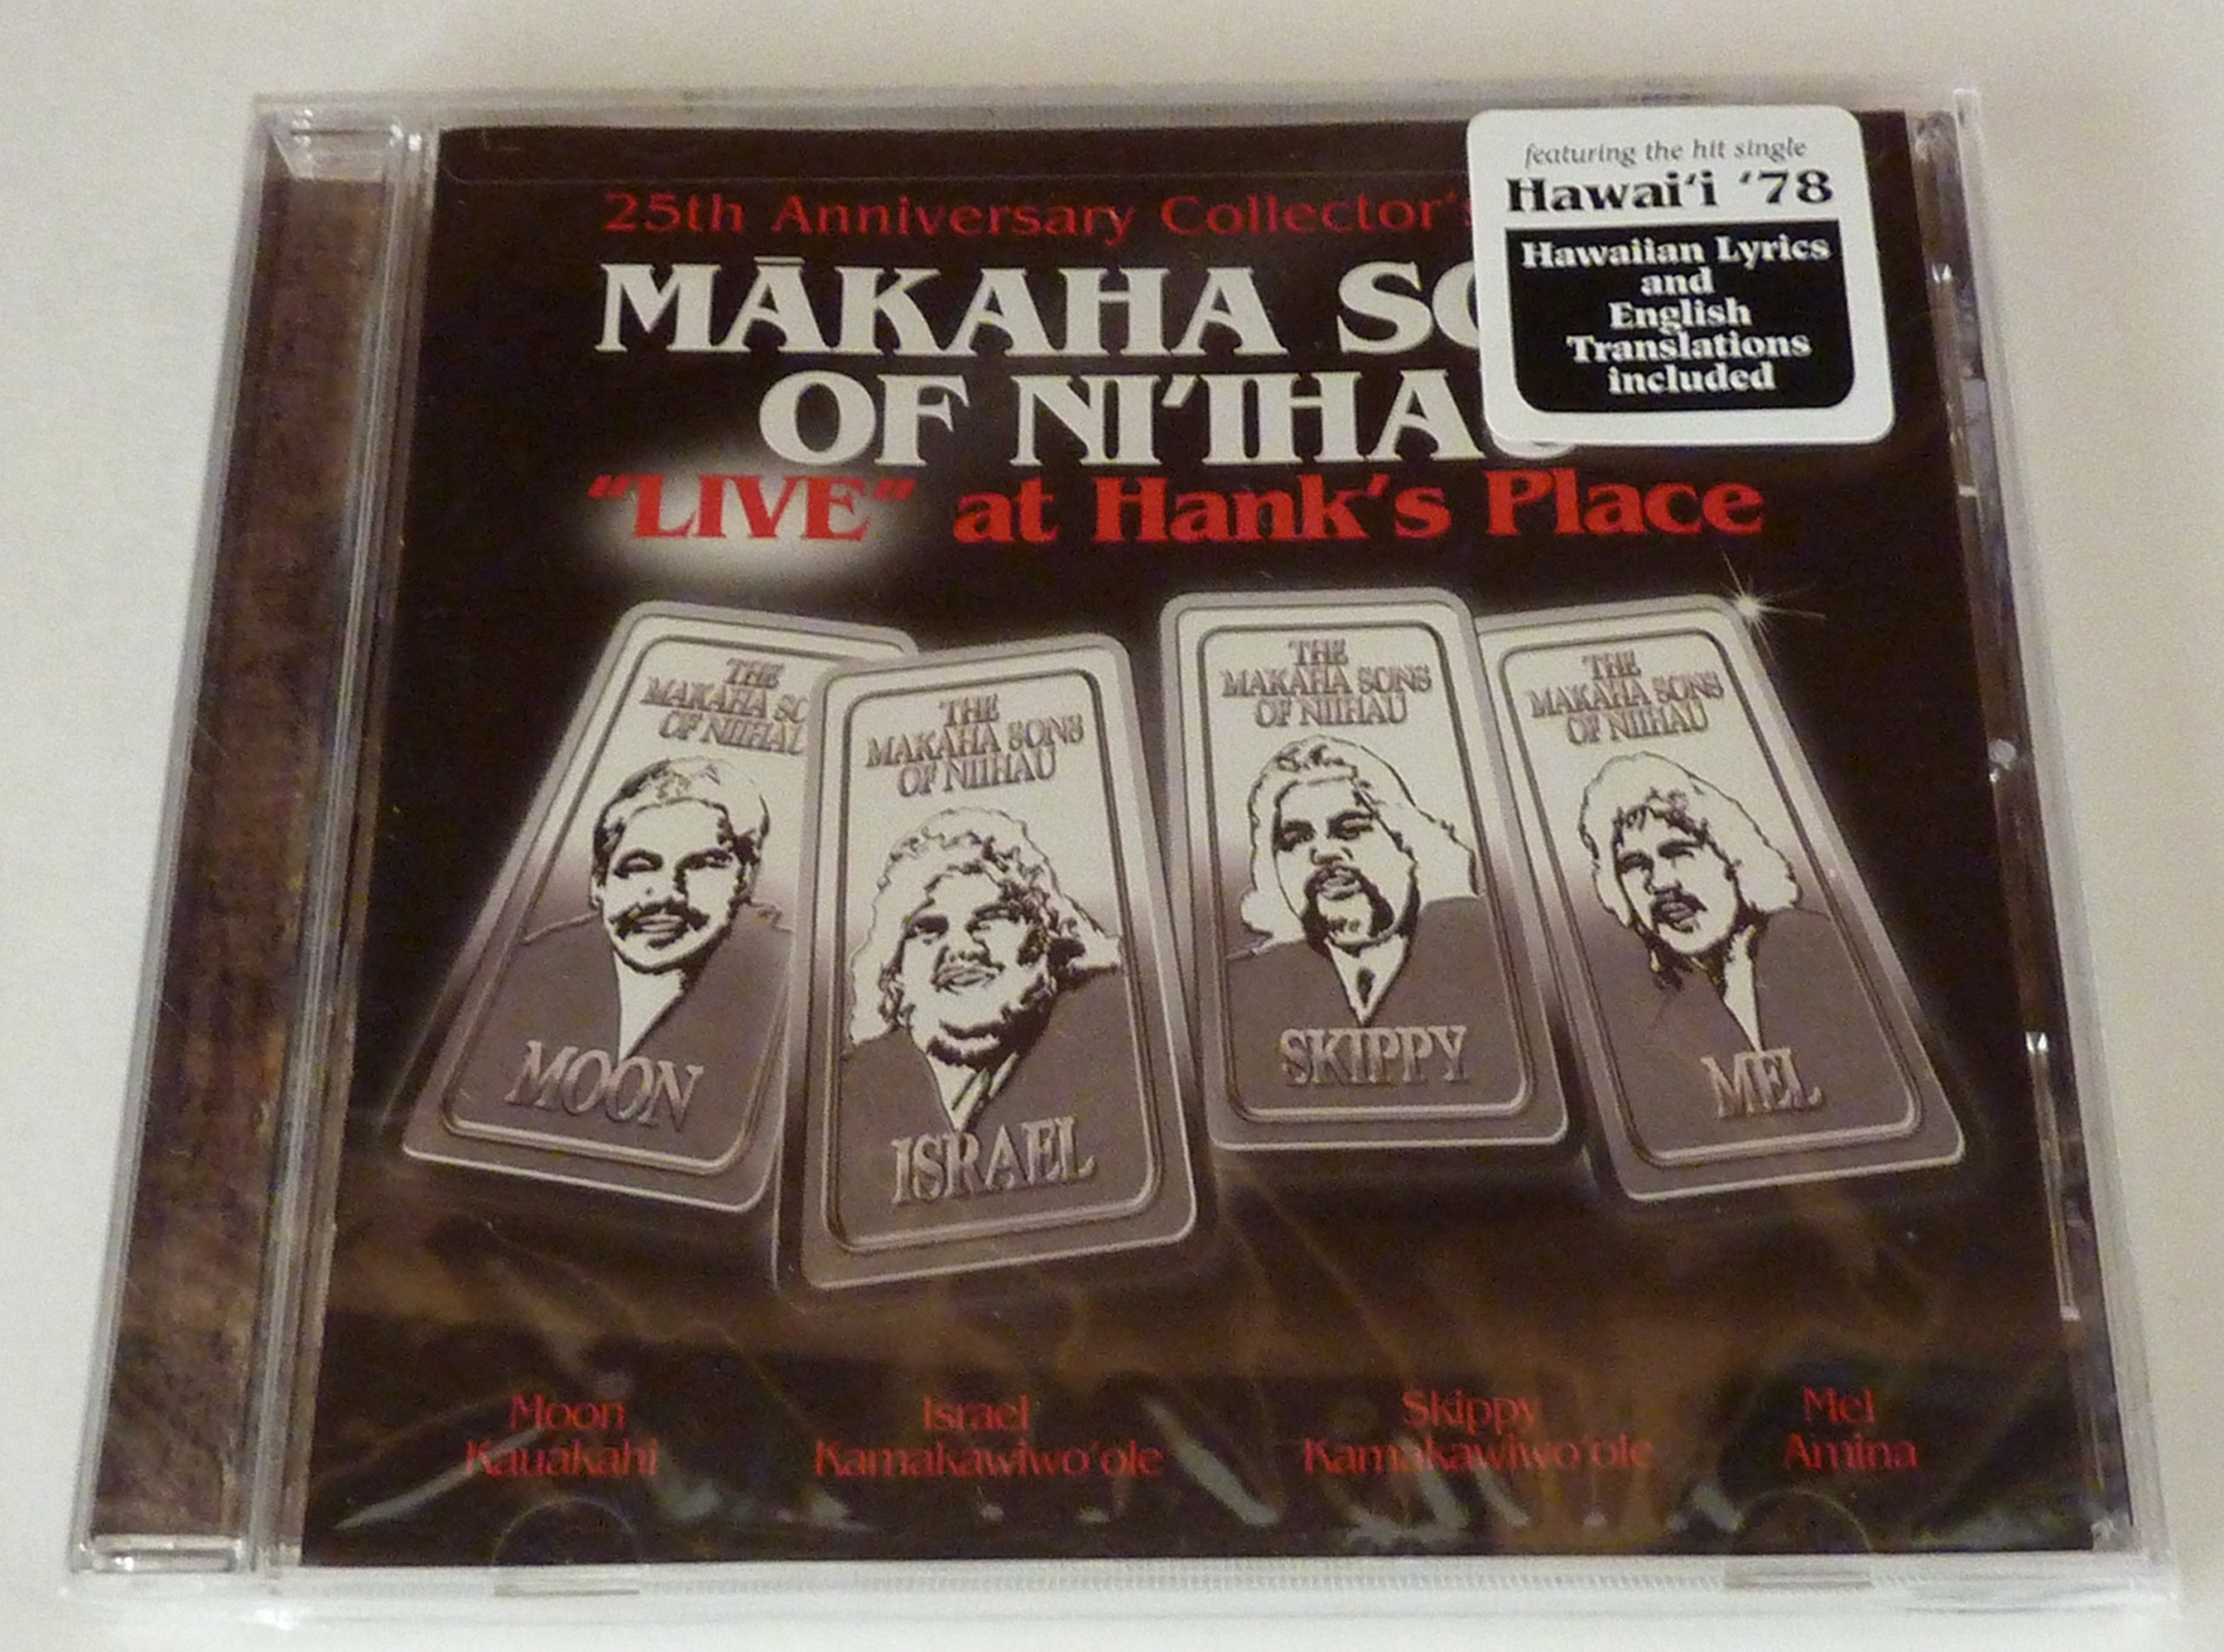 Live at Hank's Place by Quiet Storm Records